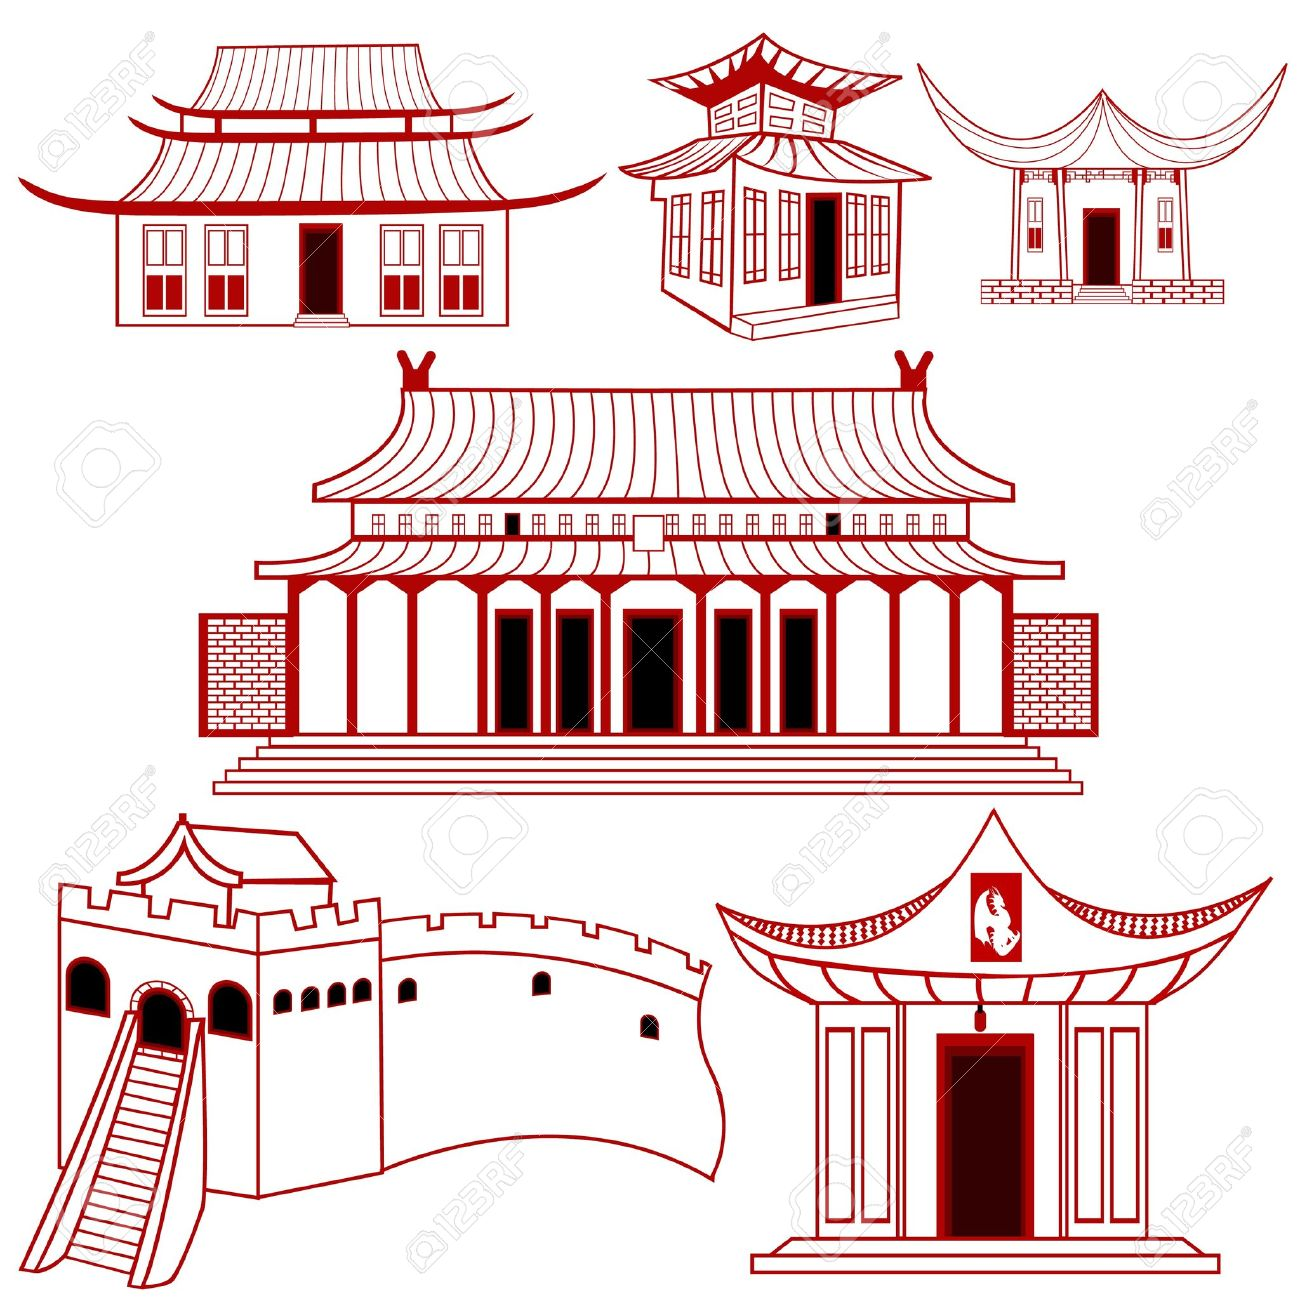 Japan traditional house clipart clipart black and white library Japan traditional house clipart - ClipartFest clipart black and white library